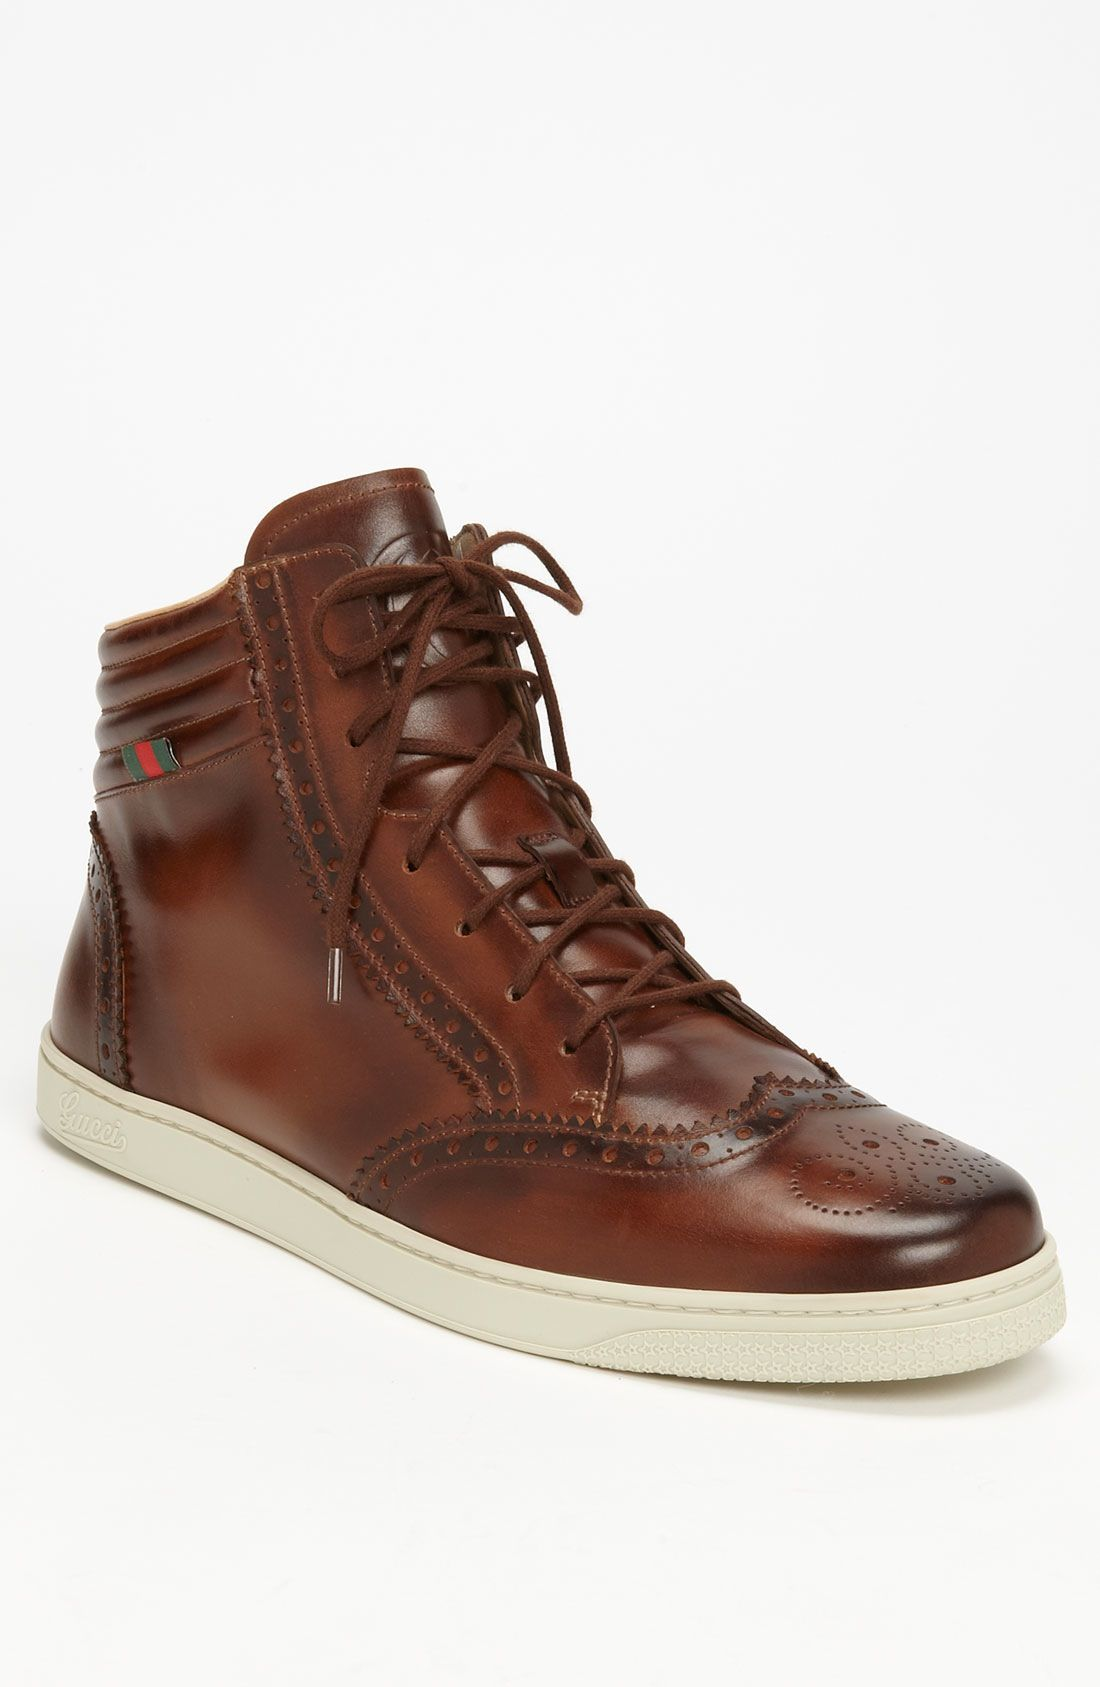 bb6b6993b93 Gucci  Coda  High Top Sneaker available at  Nordstrom